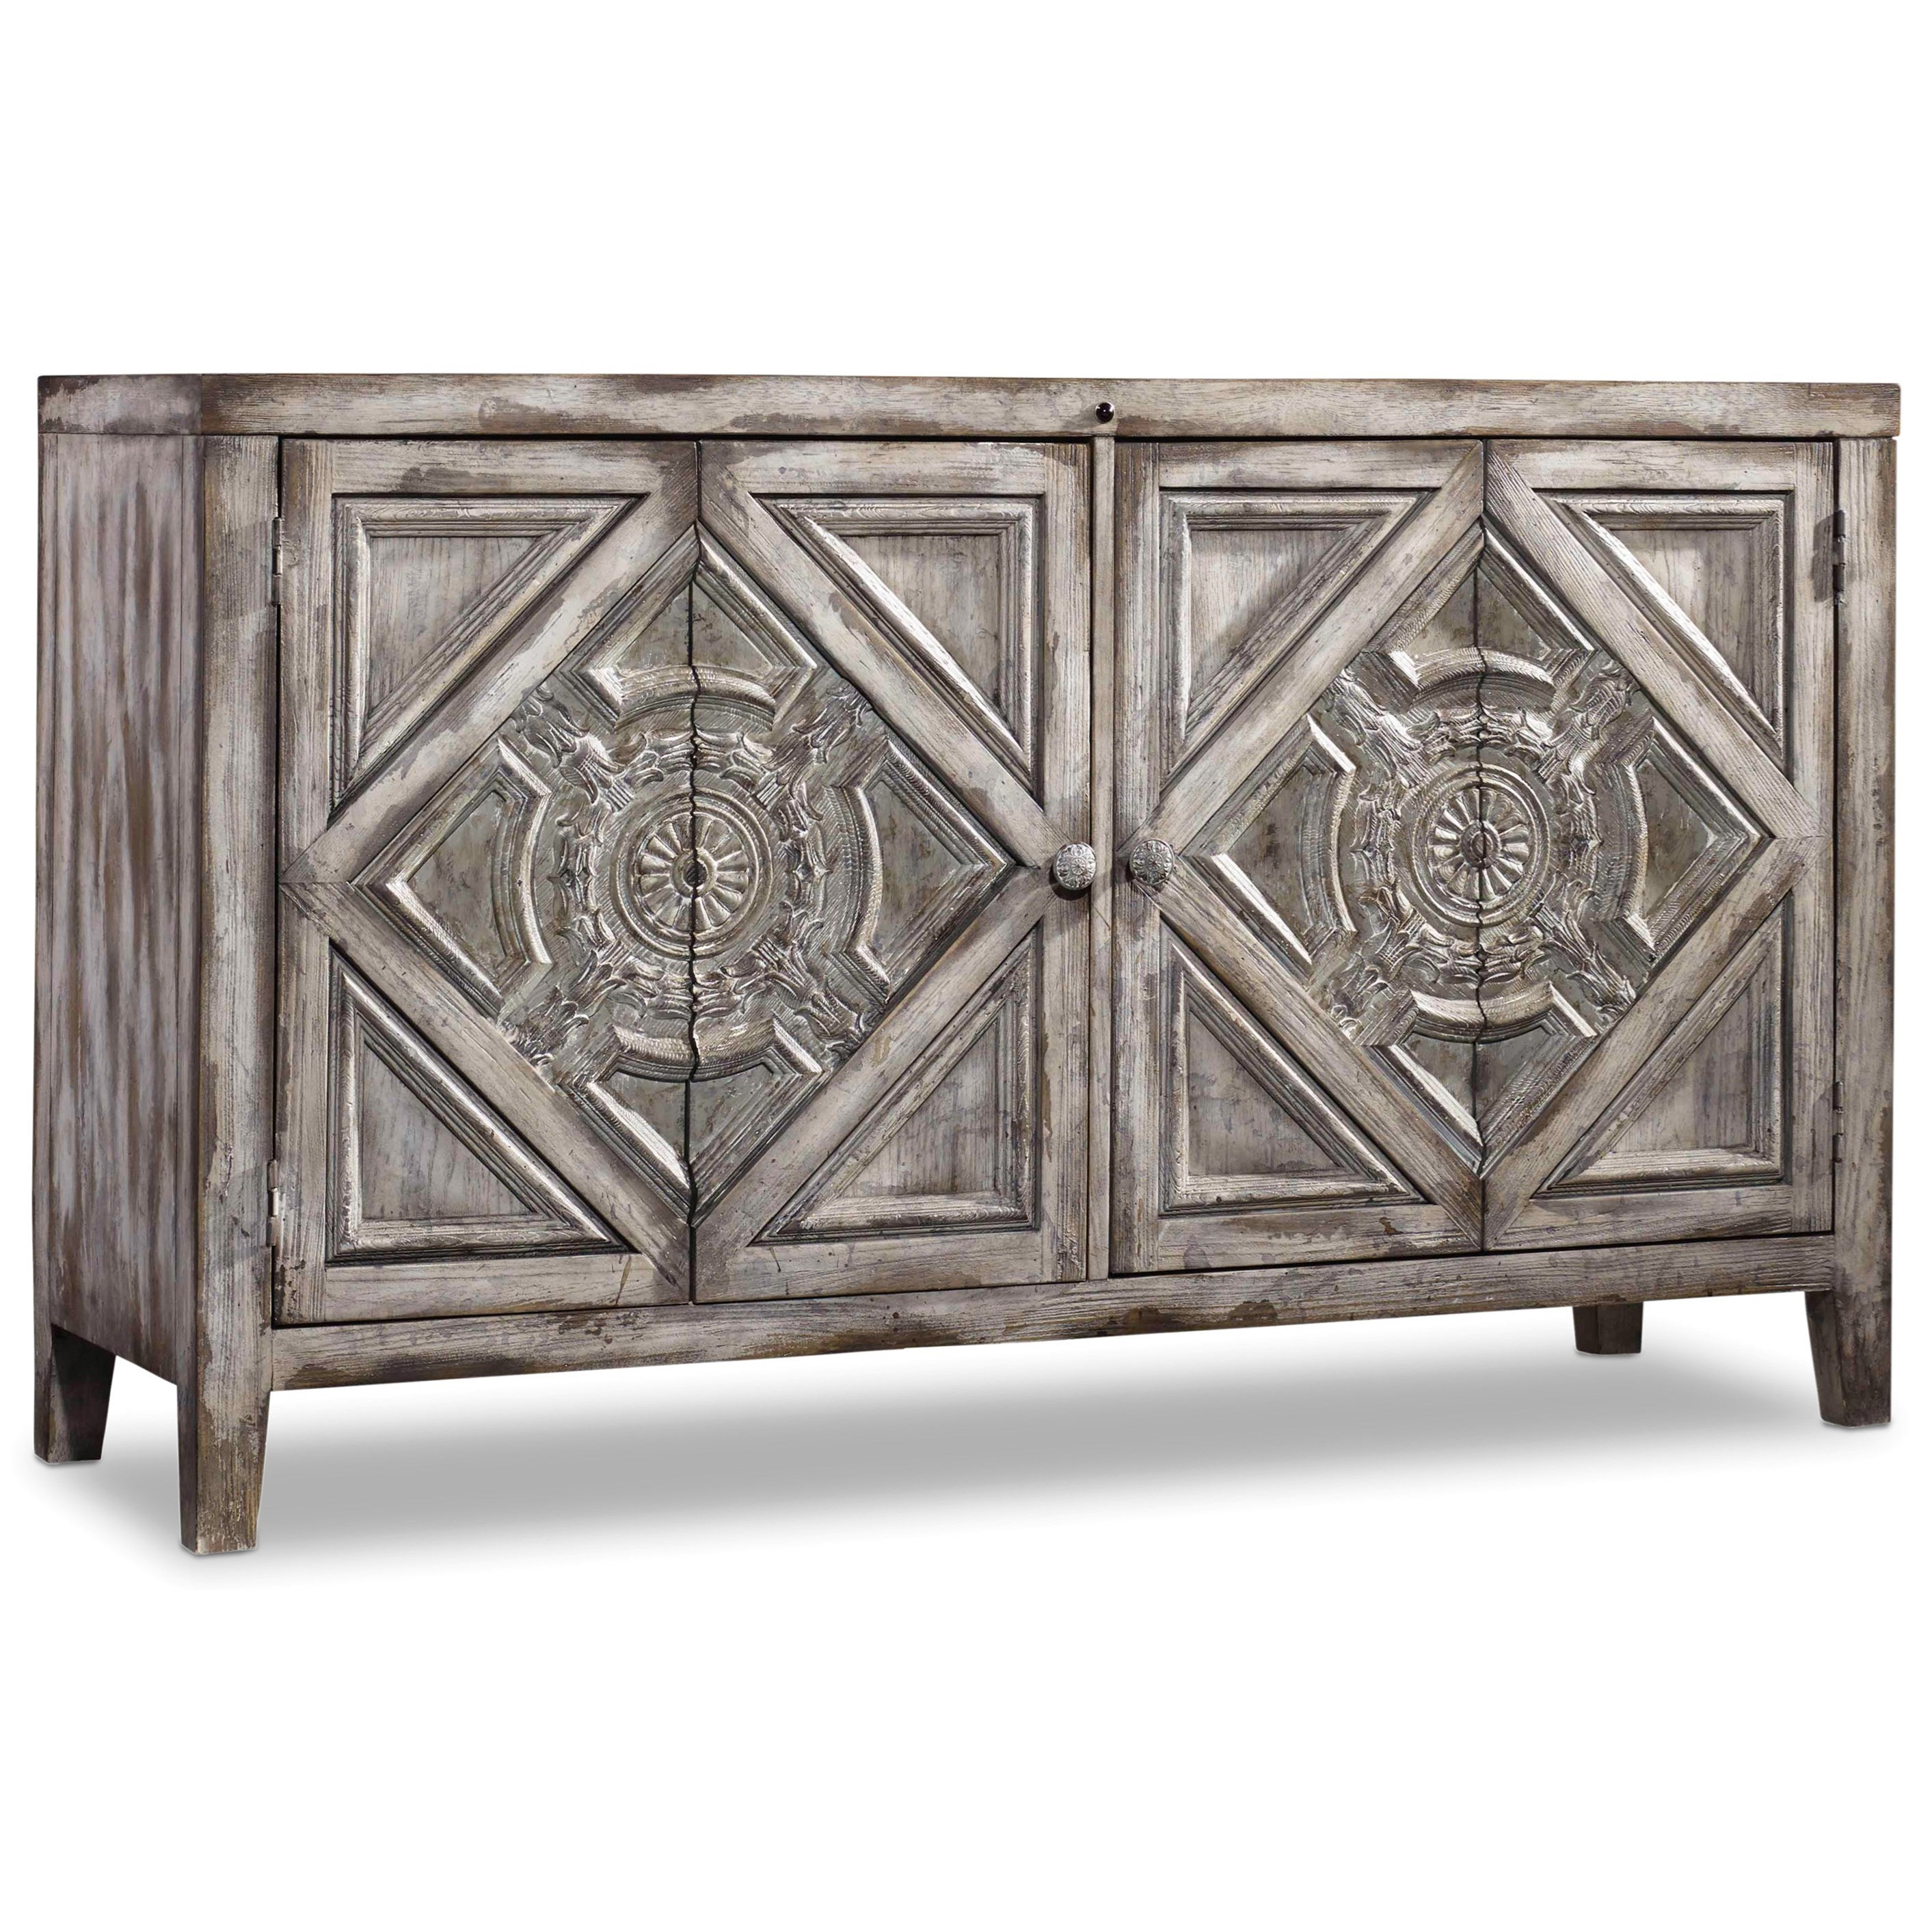 Hamilton Home Chatelet Chest - Item Number: 5800-85122